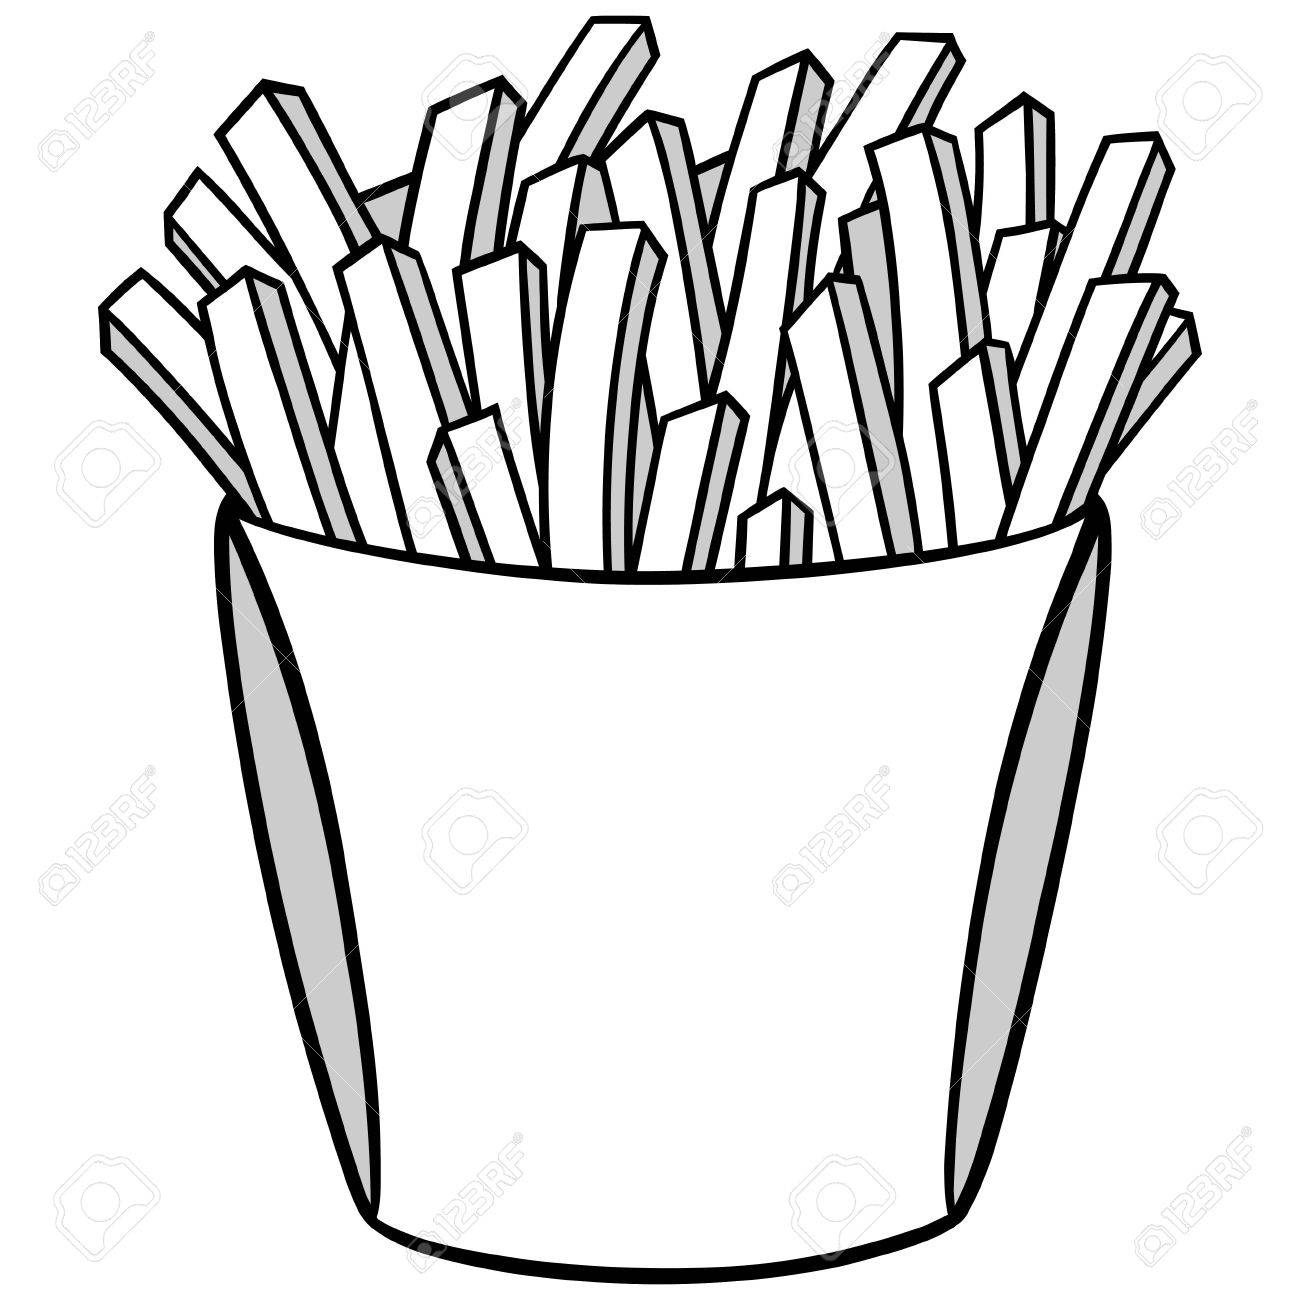 Fries black and white clipart clip art transparent French Fries Clipart Black And White (97+ images in Collection) Page 1 clip art transparent